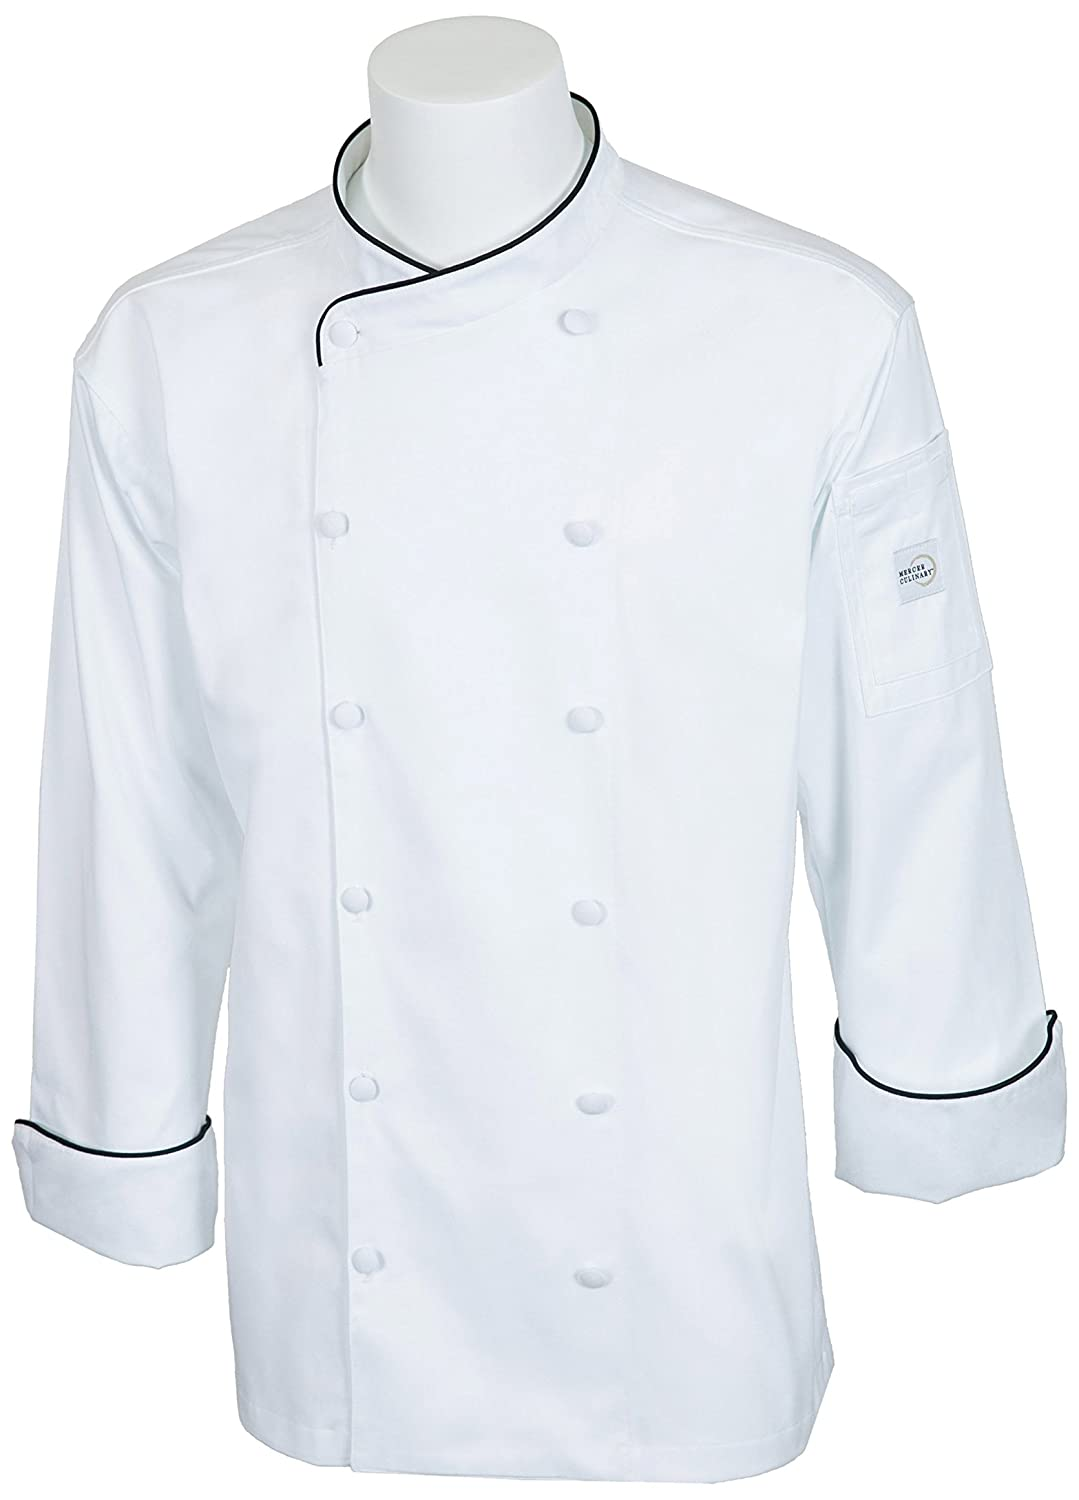 Mercer Culinary M62020WBL Renaissance Men's Scoop Neck Jacket with Black Piping, Large, White